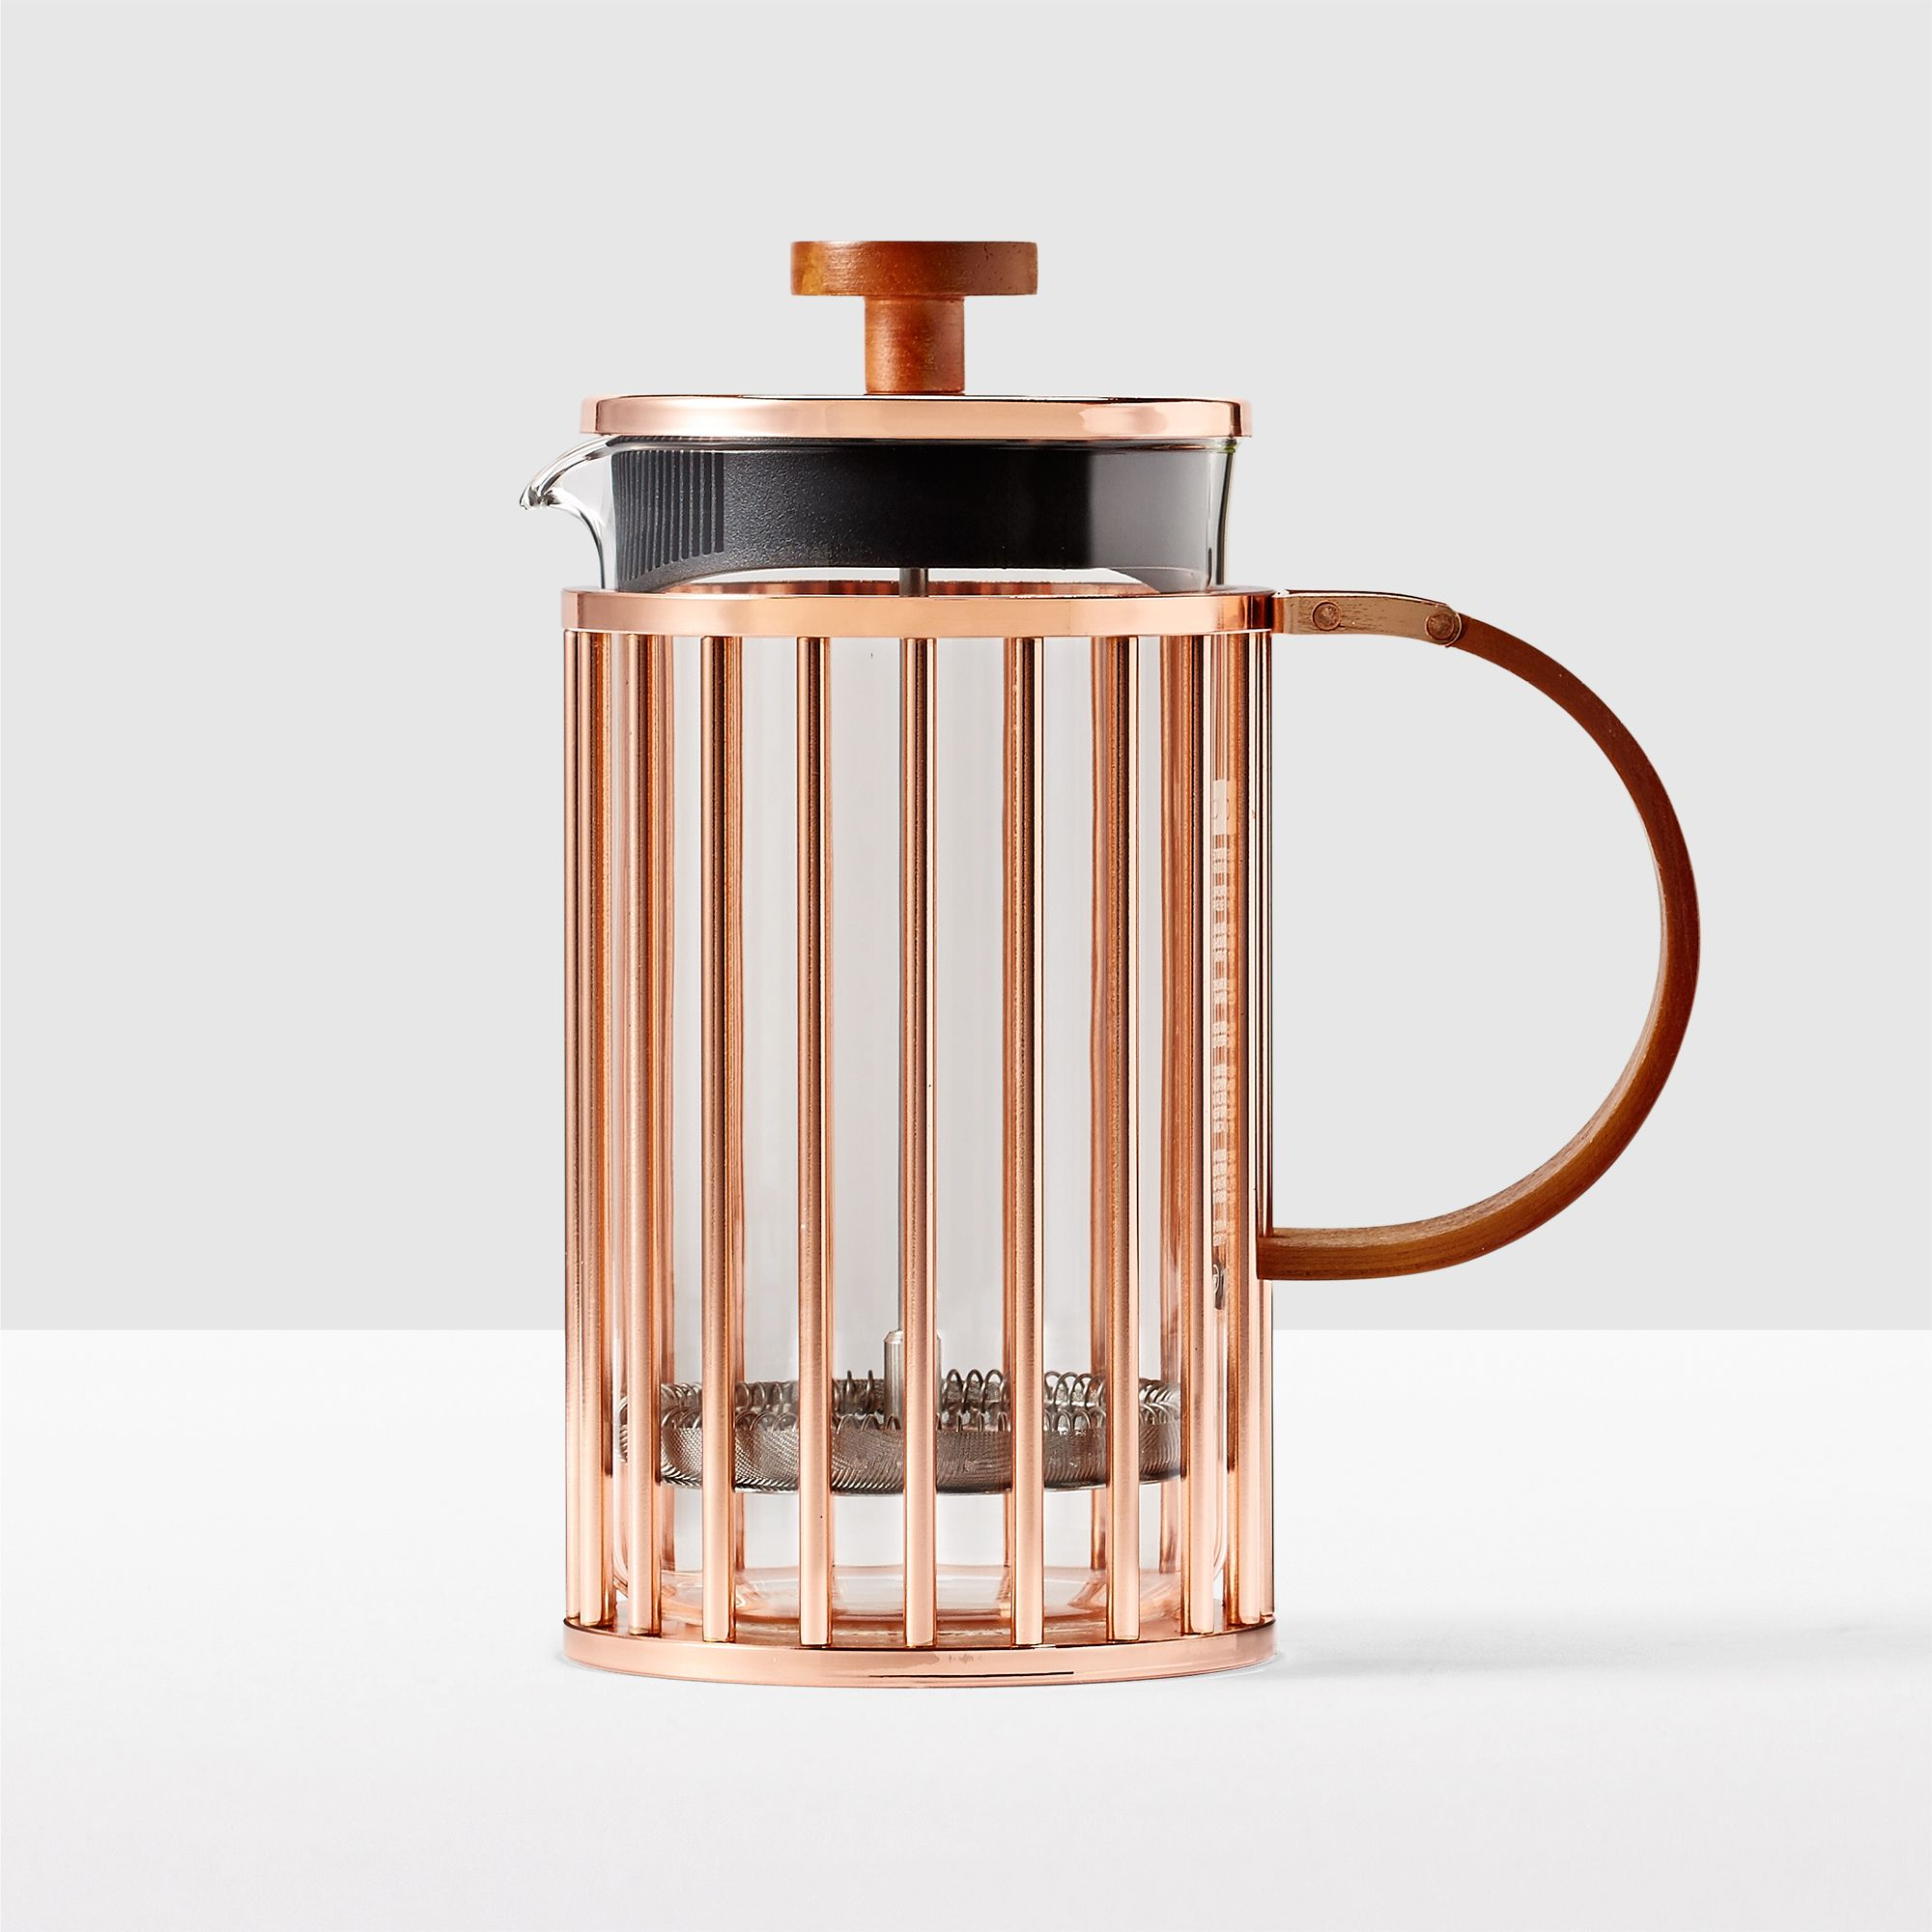 Bed bath beyond french press - Copper French Press